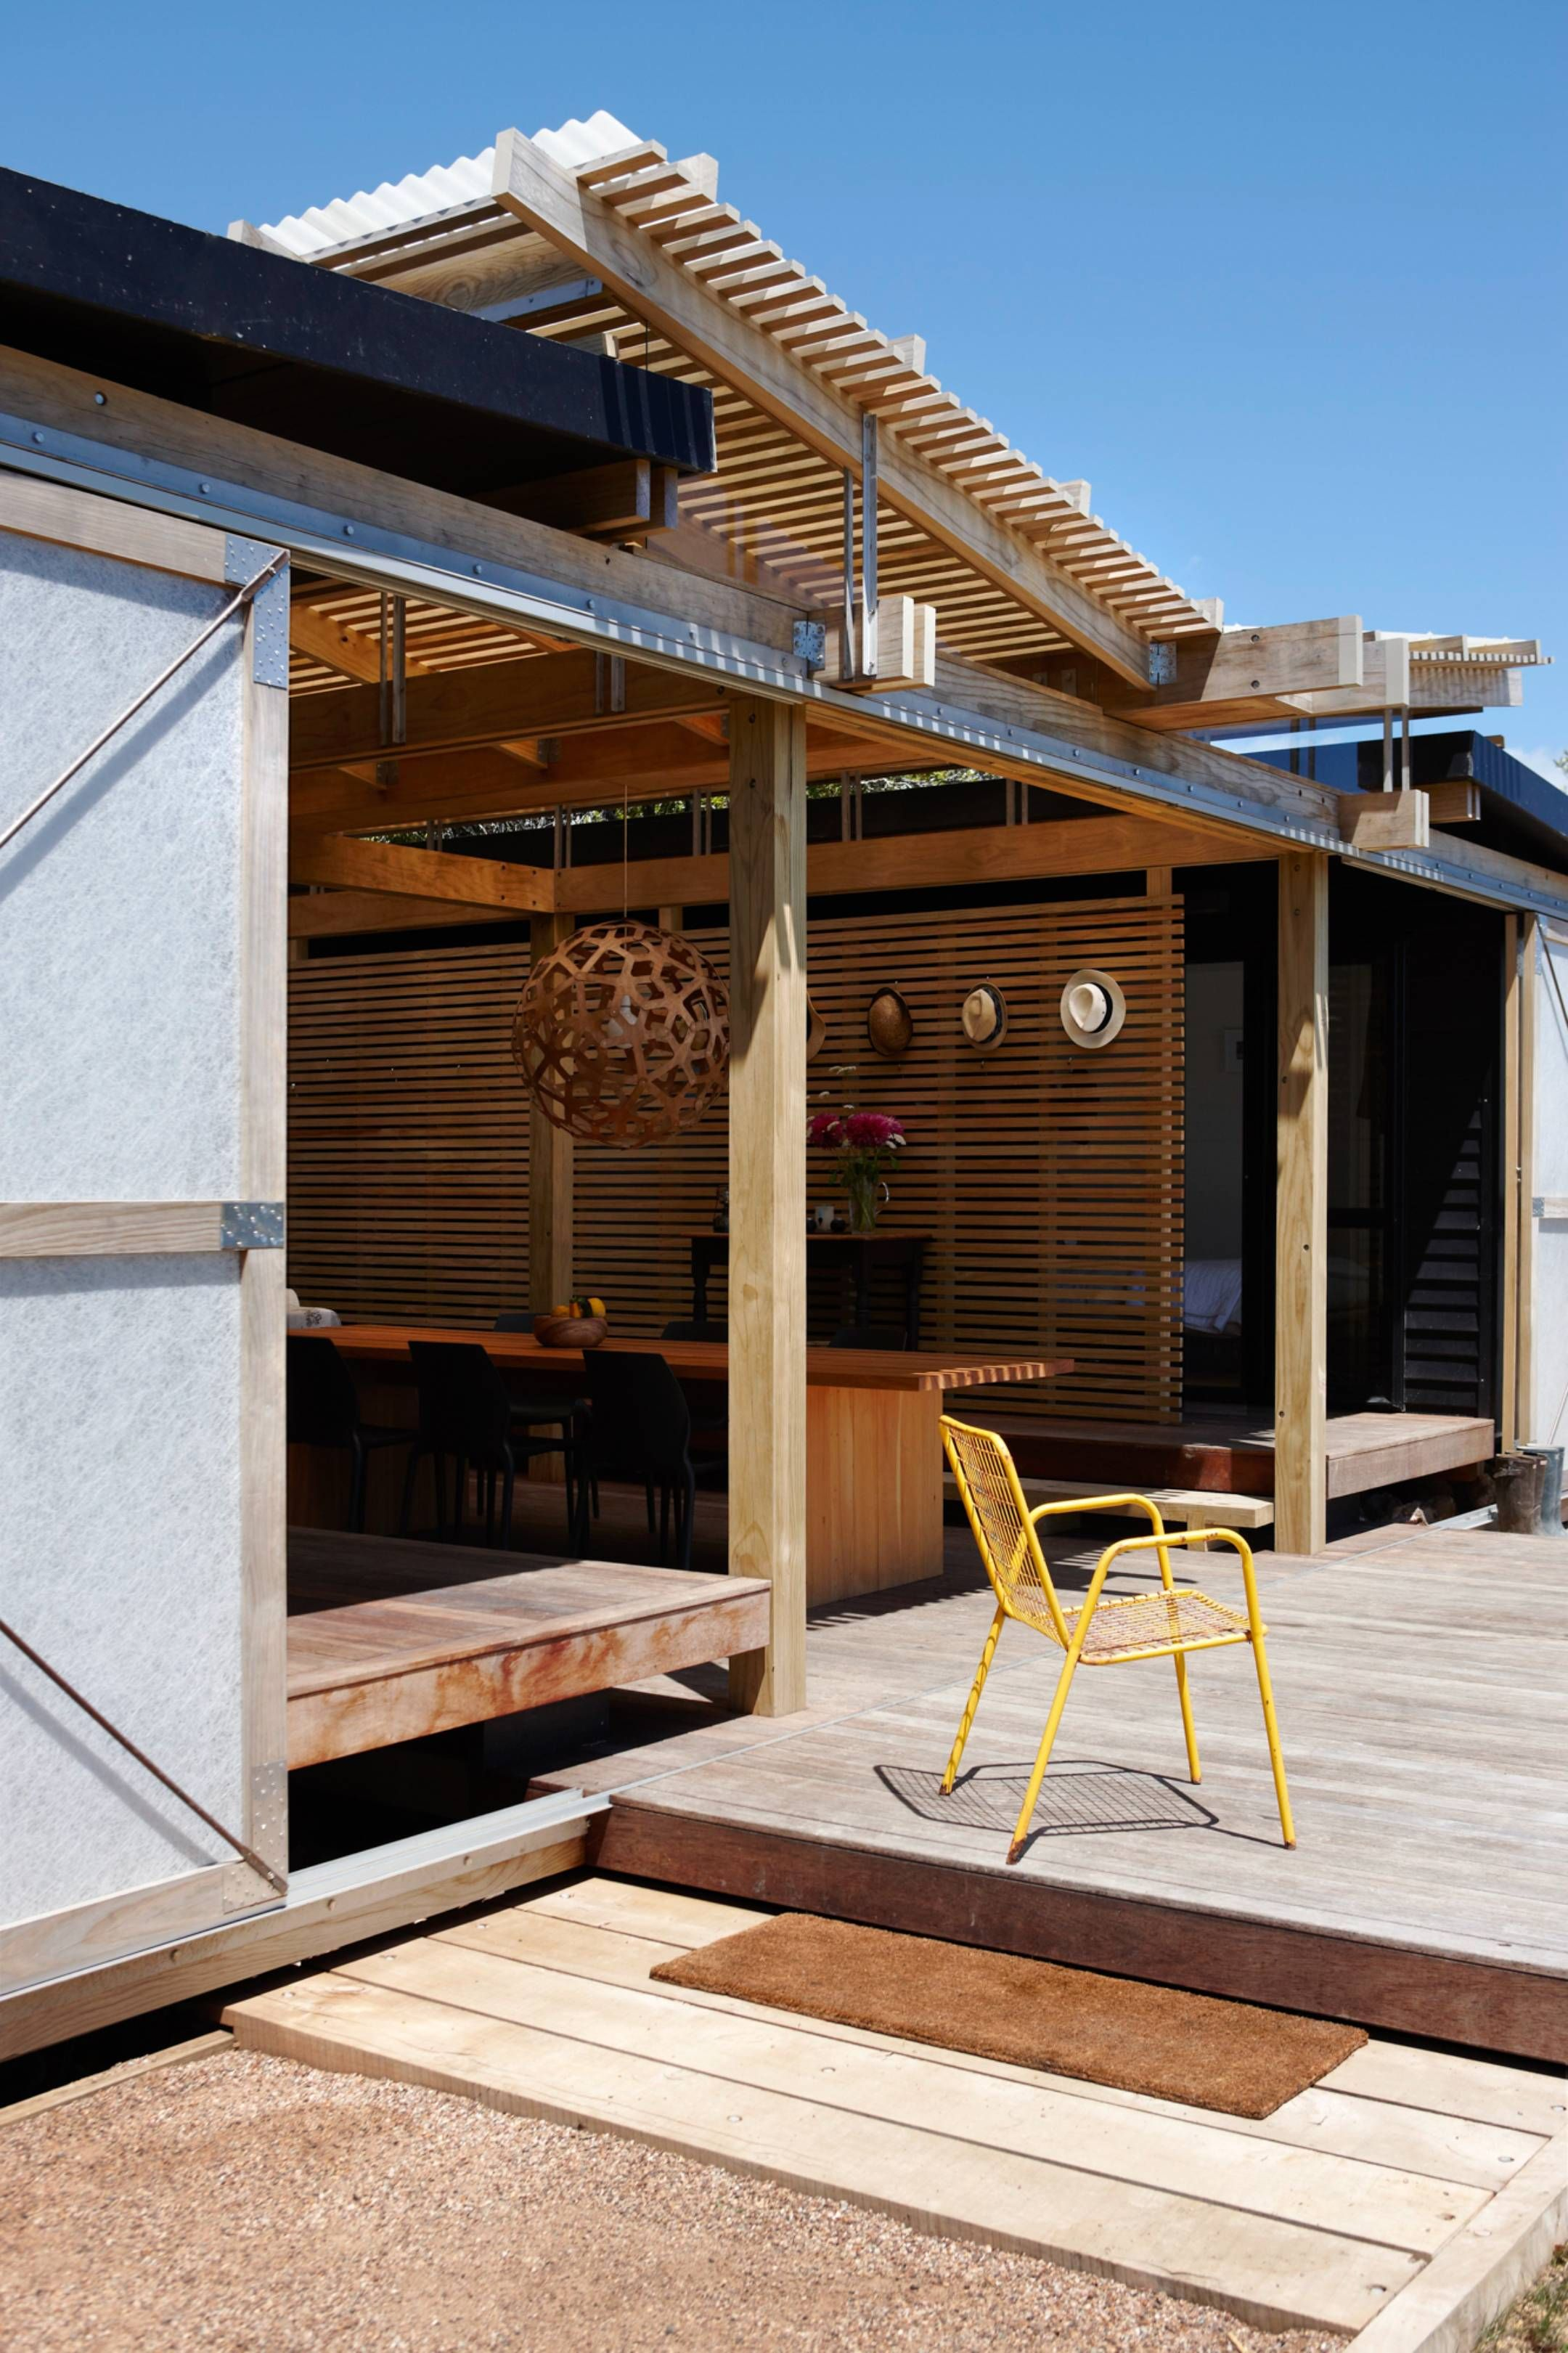 Gogo bach by herbst architects photo jackie meiring arquitectura